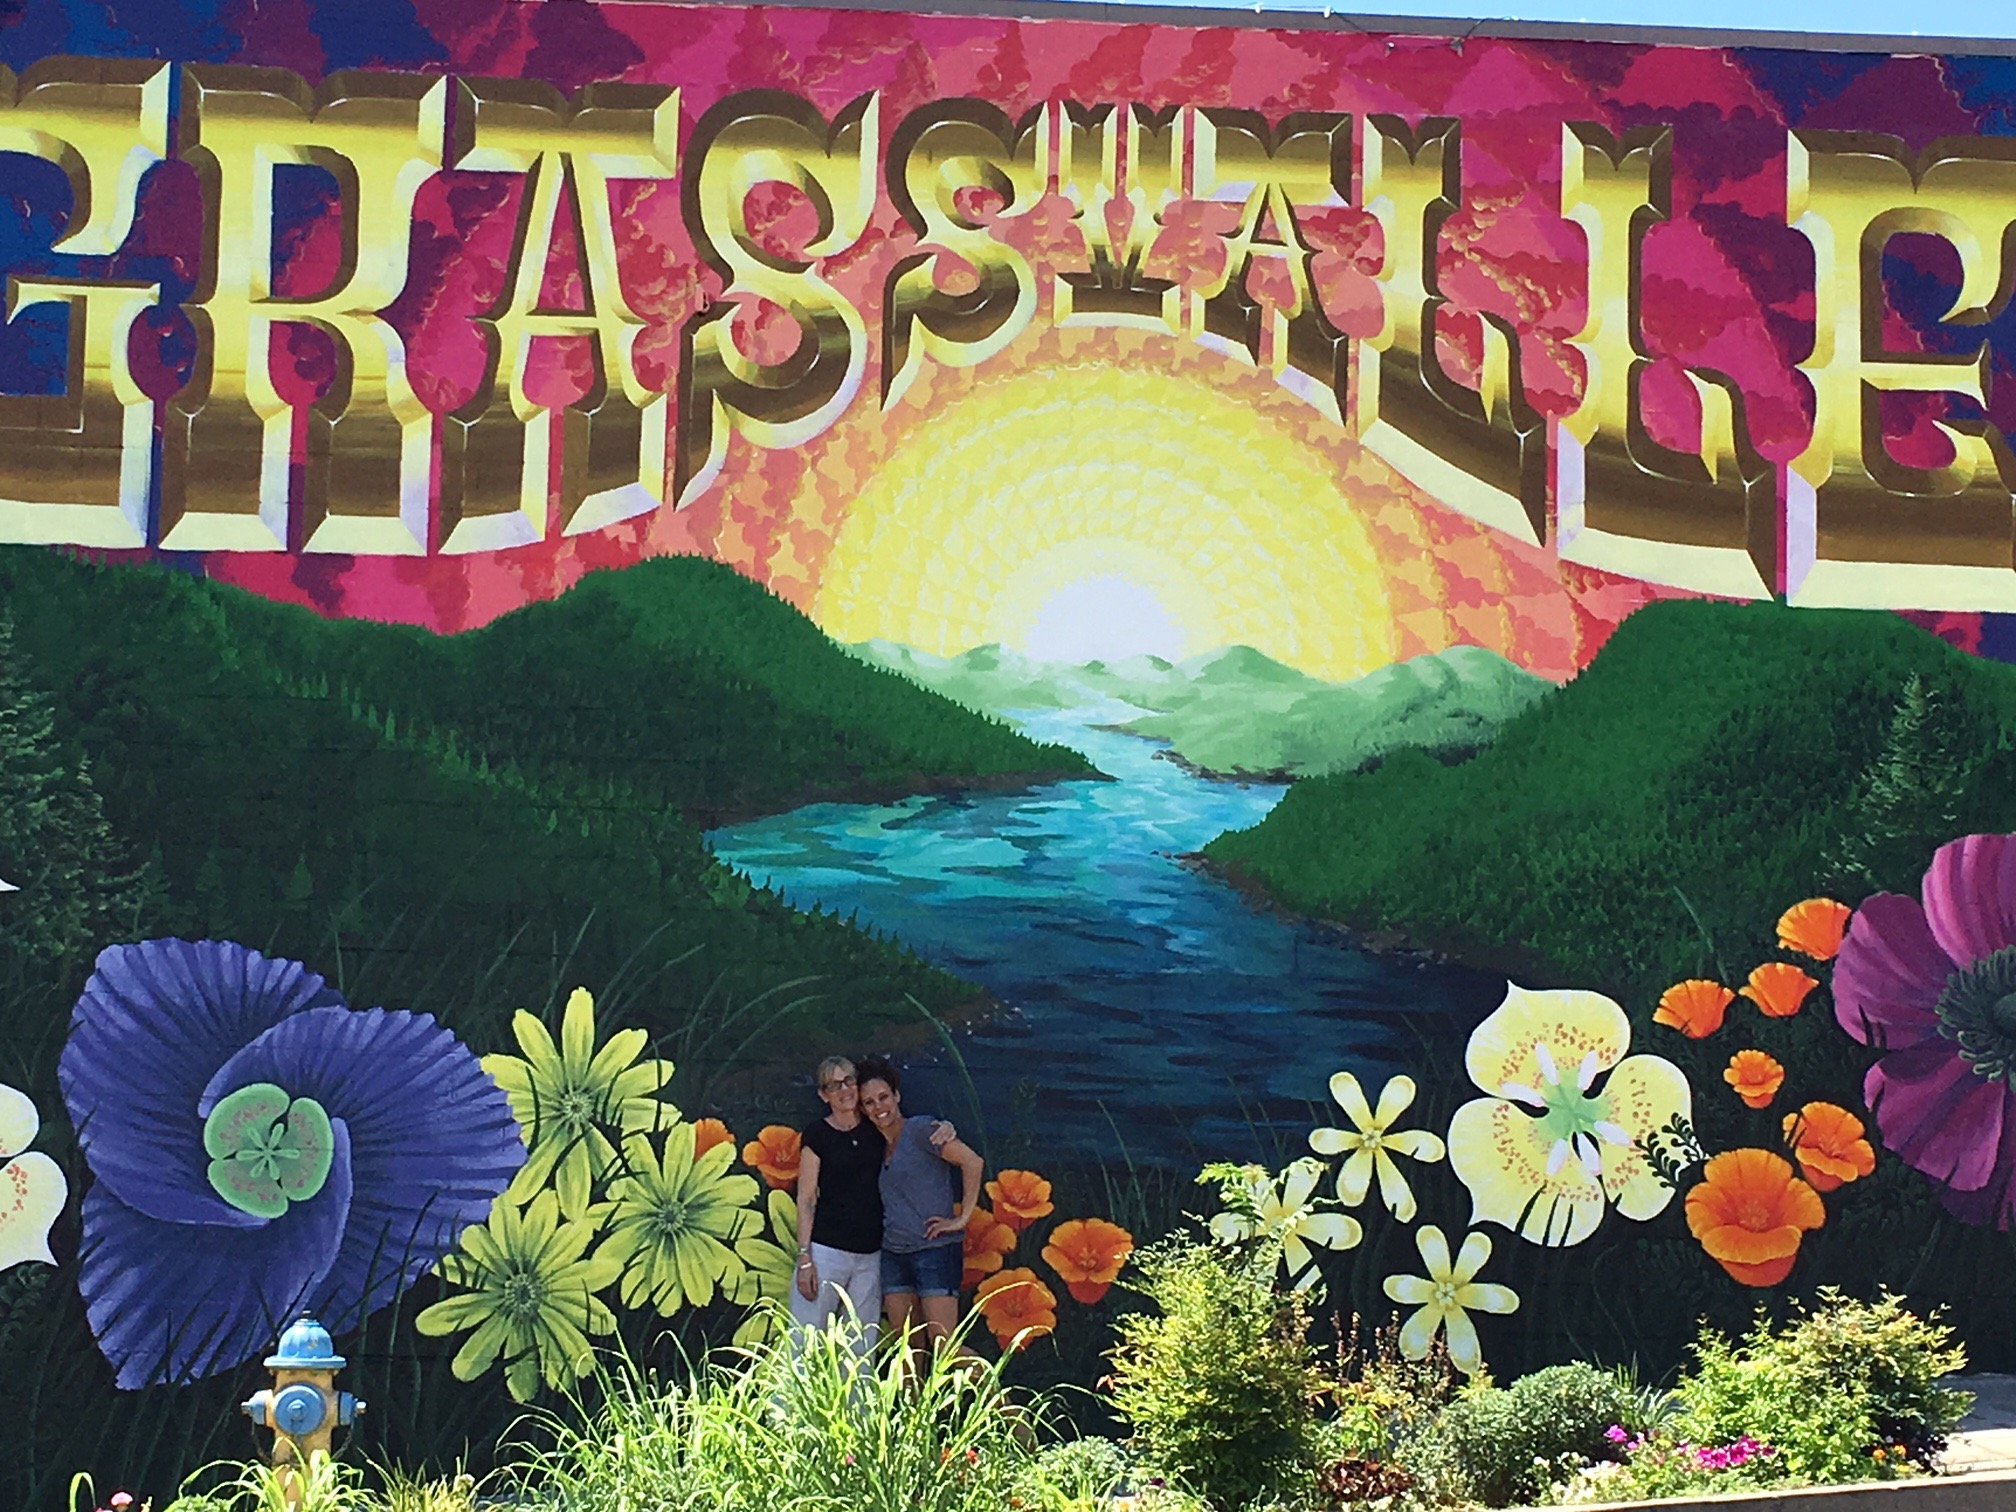 New mural in Historic Downtown Grass Valley